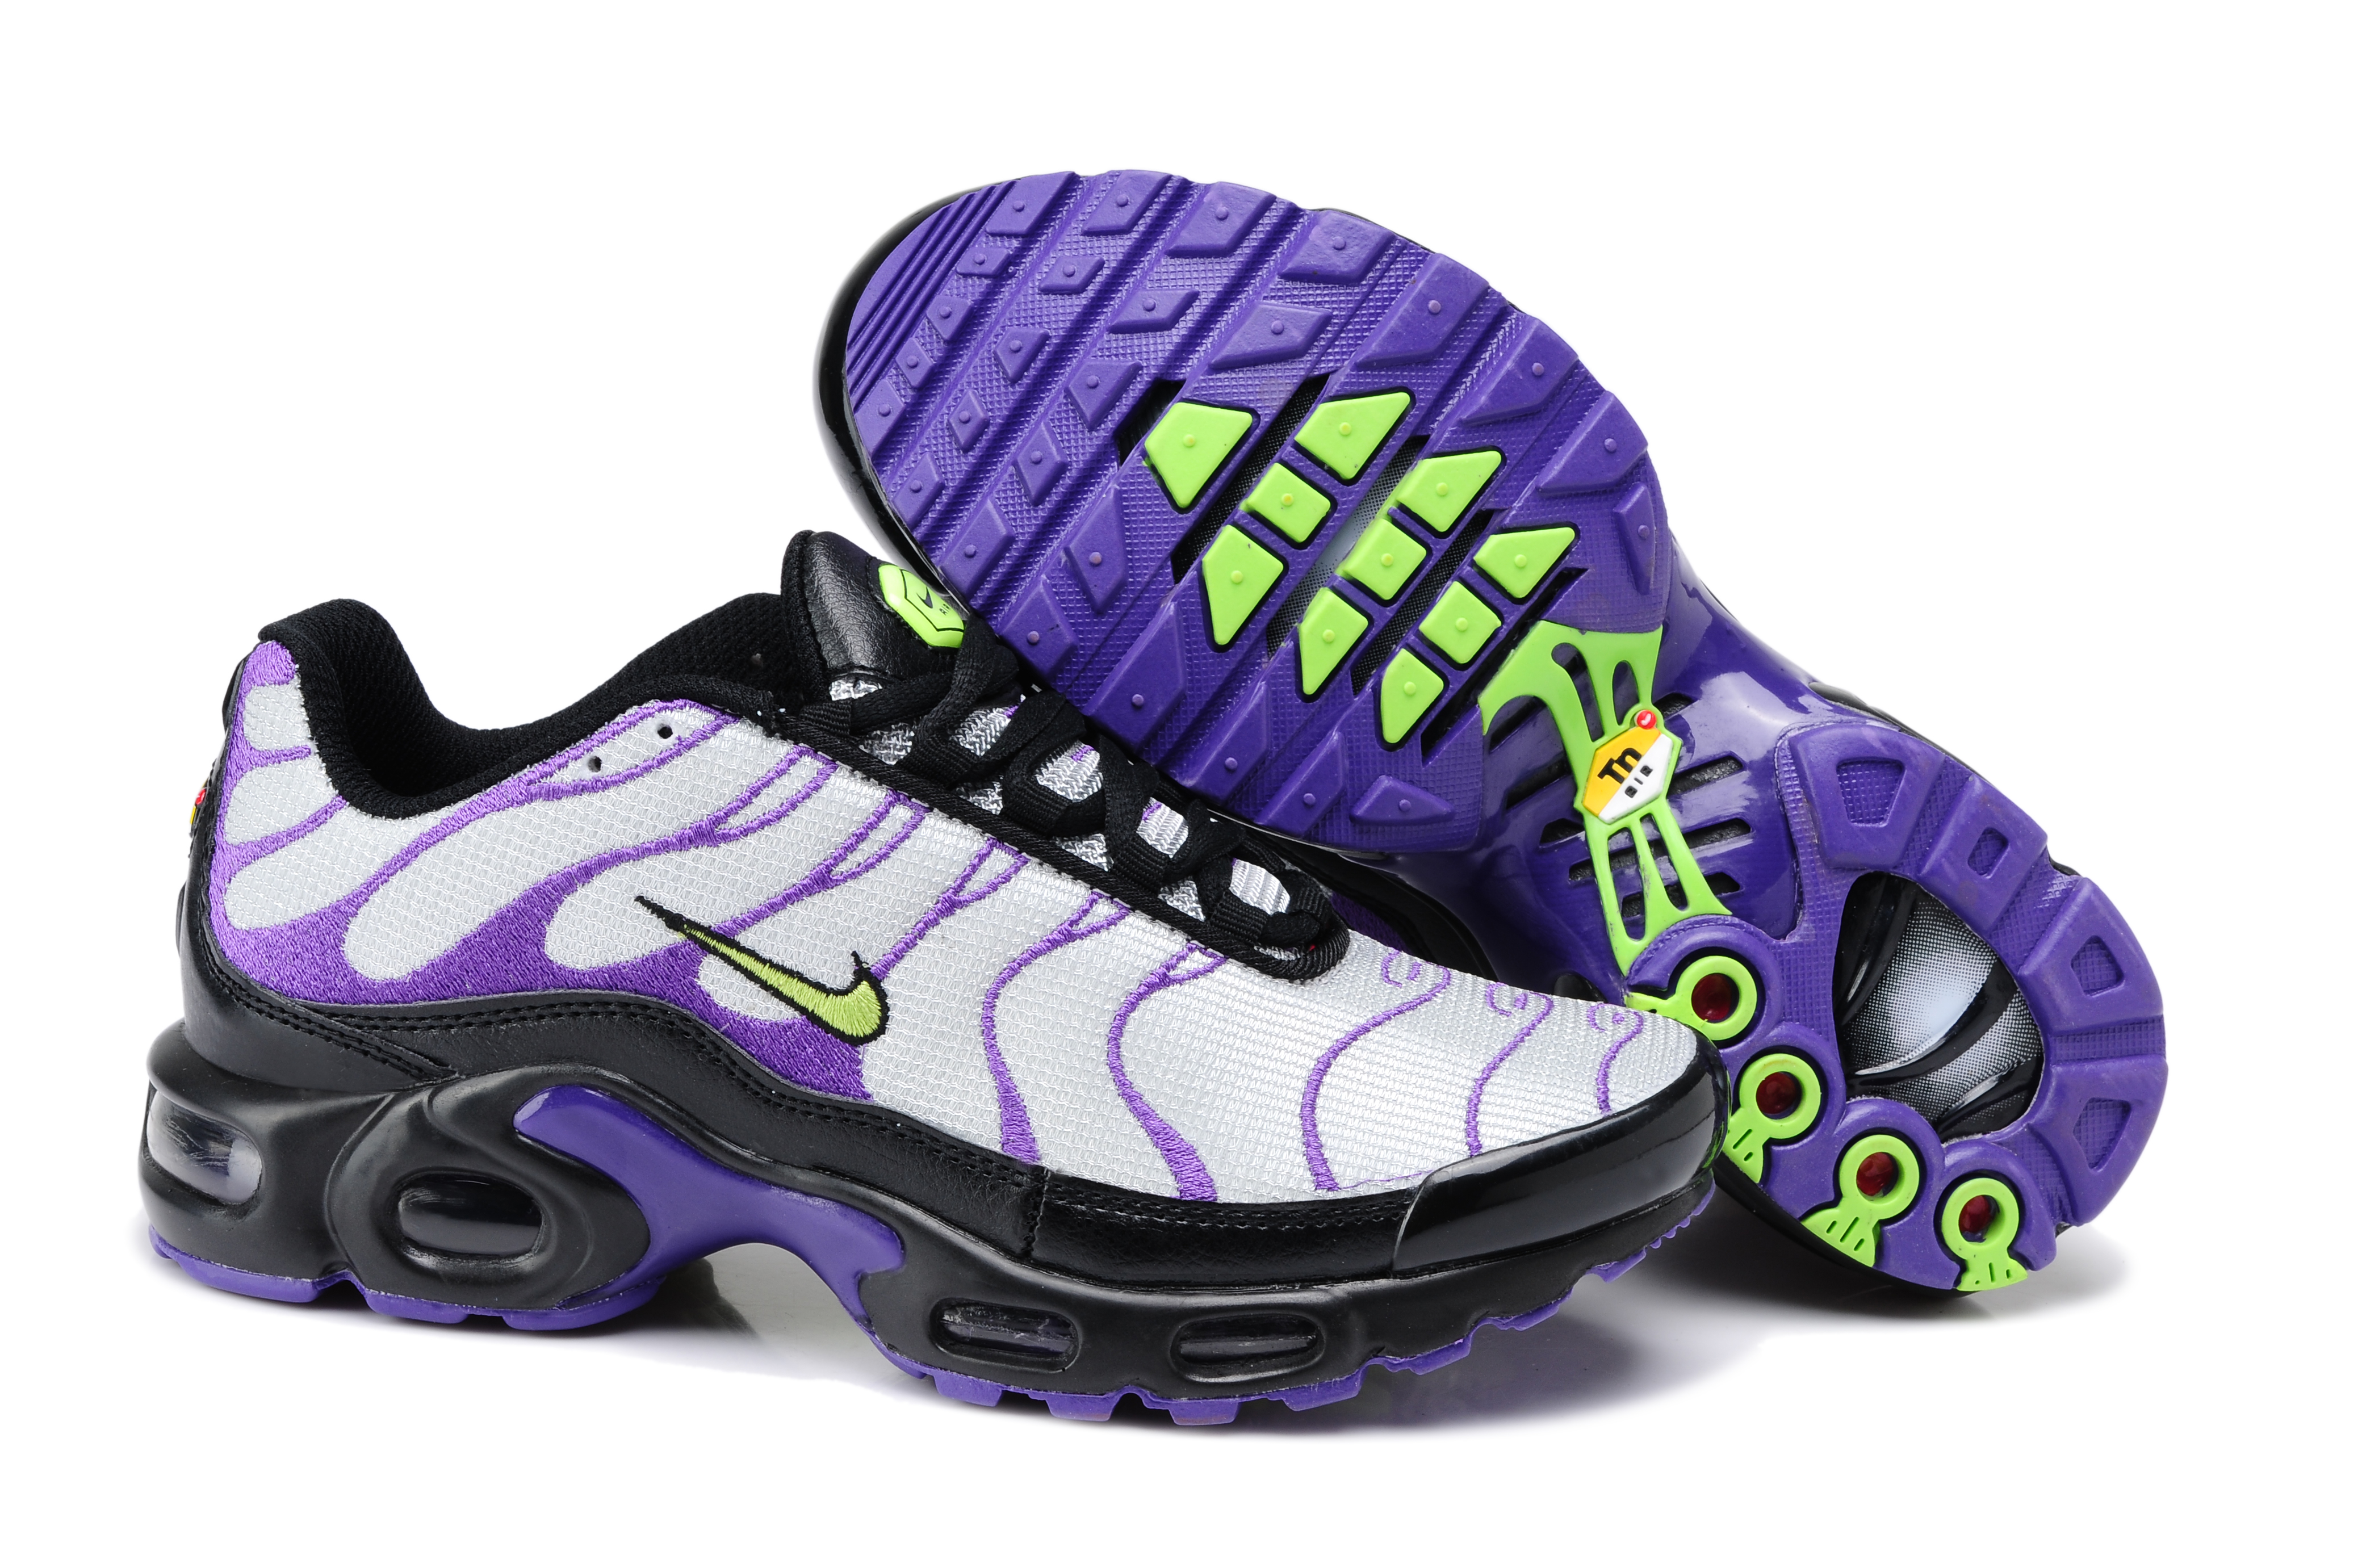 new style 9f7a7 ed2fa Nike TN 2016Femme Homme tn Requin nike air max tn requin 39 qualité  chaussure sport nike